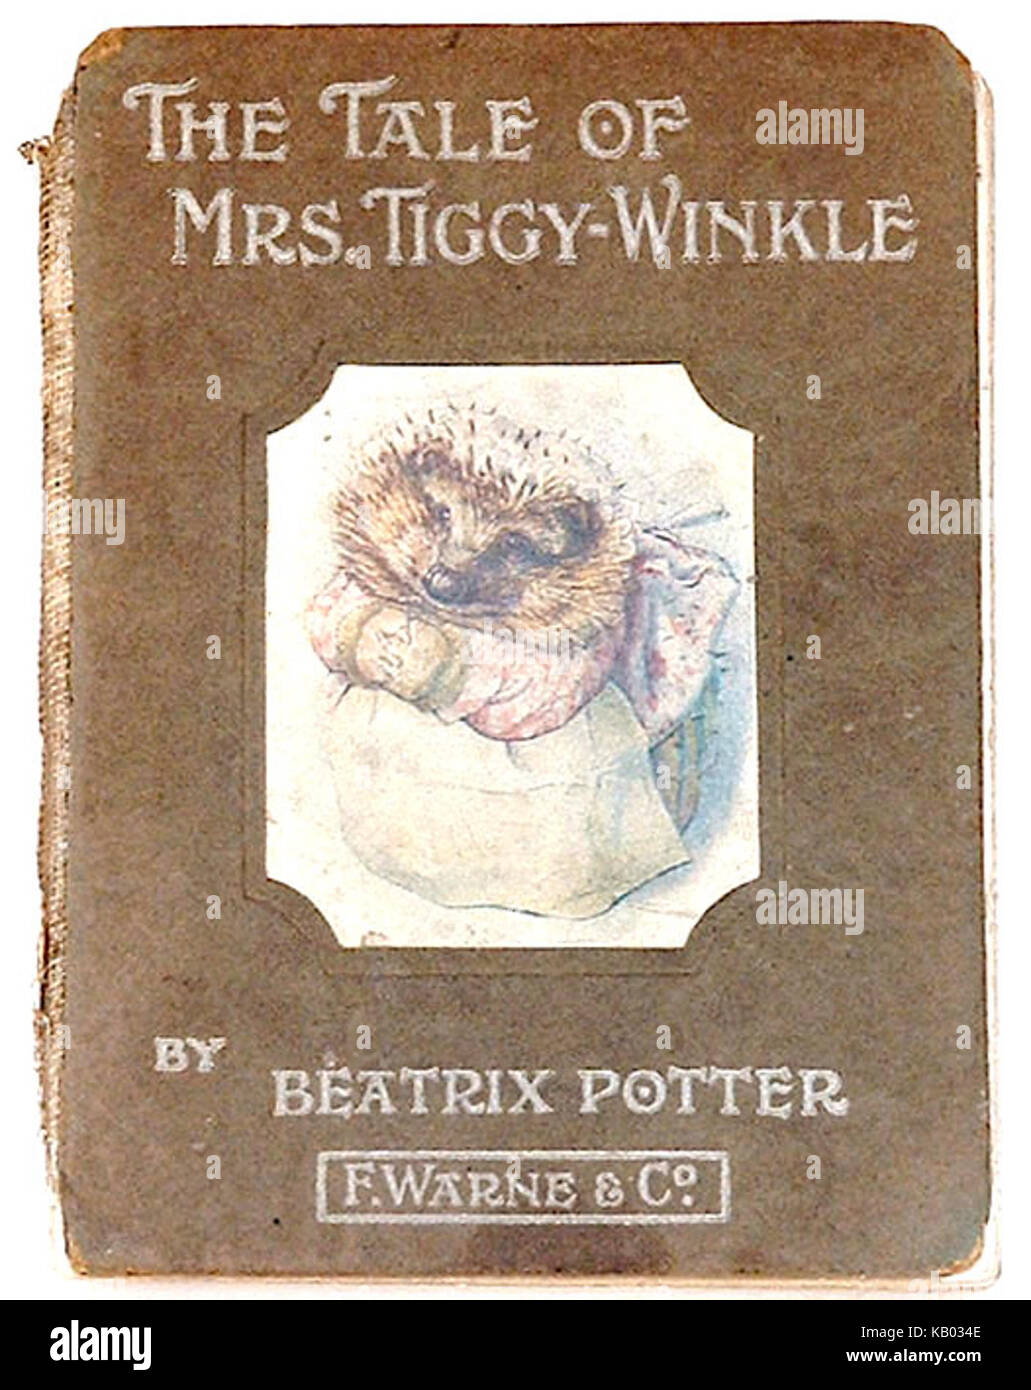 The Tale of Mrs Tiggy Winkle first edition cover - Stock Image